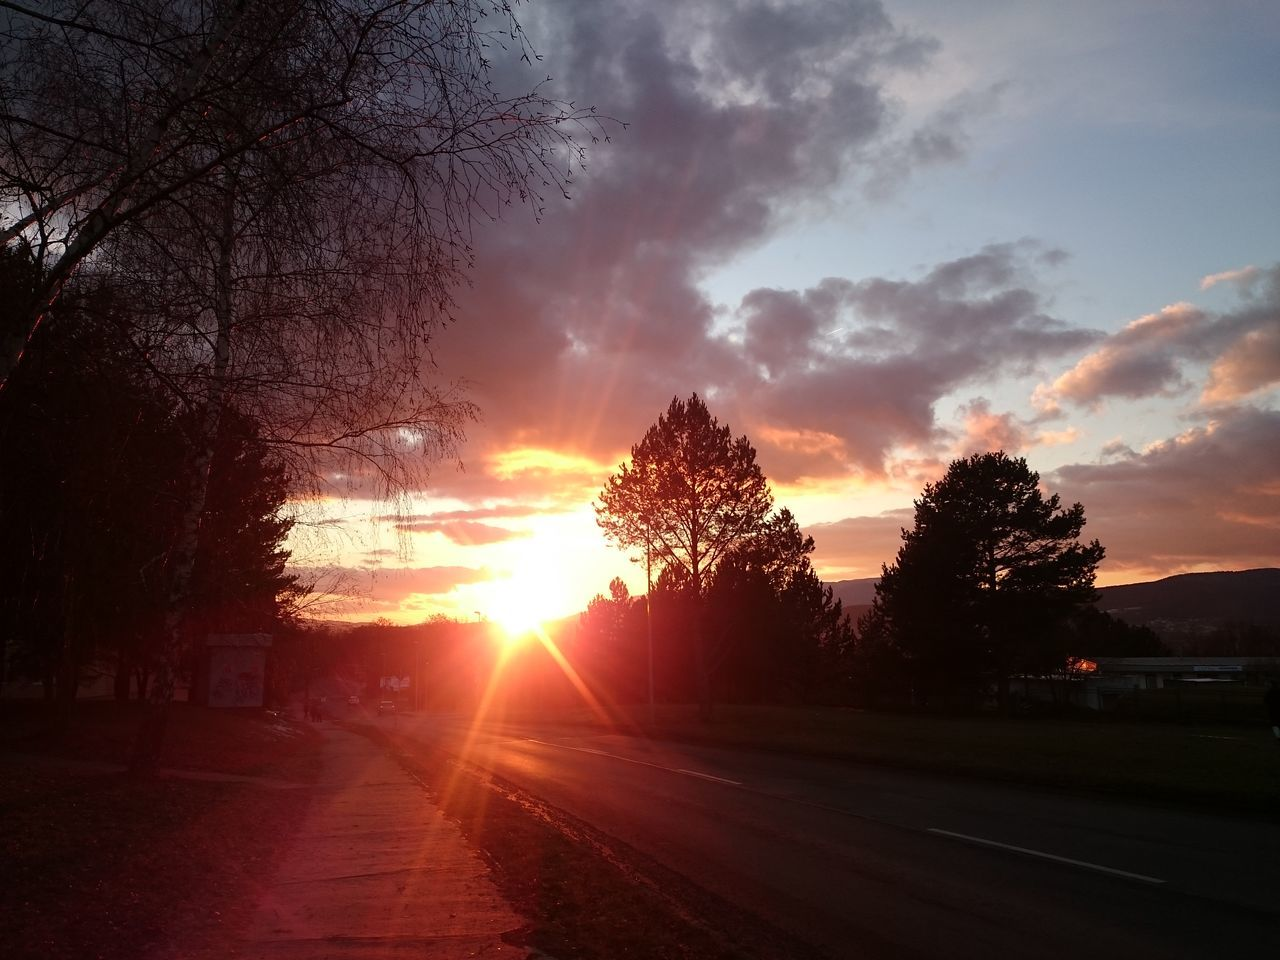 sunset, tree, sun, sky, road, silhouette, scenics, nature, no people, beauty in nature, tranquil scene, tranquility, sunlight, transportation, outdoors, the way forward, cloud - sky, day